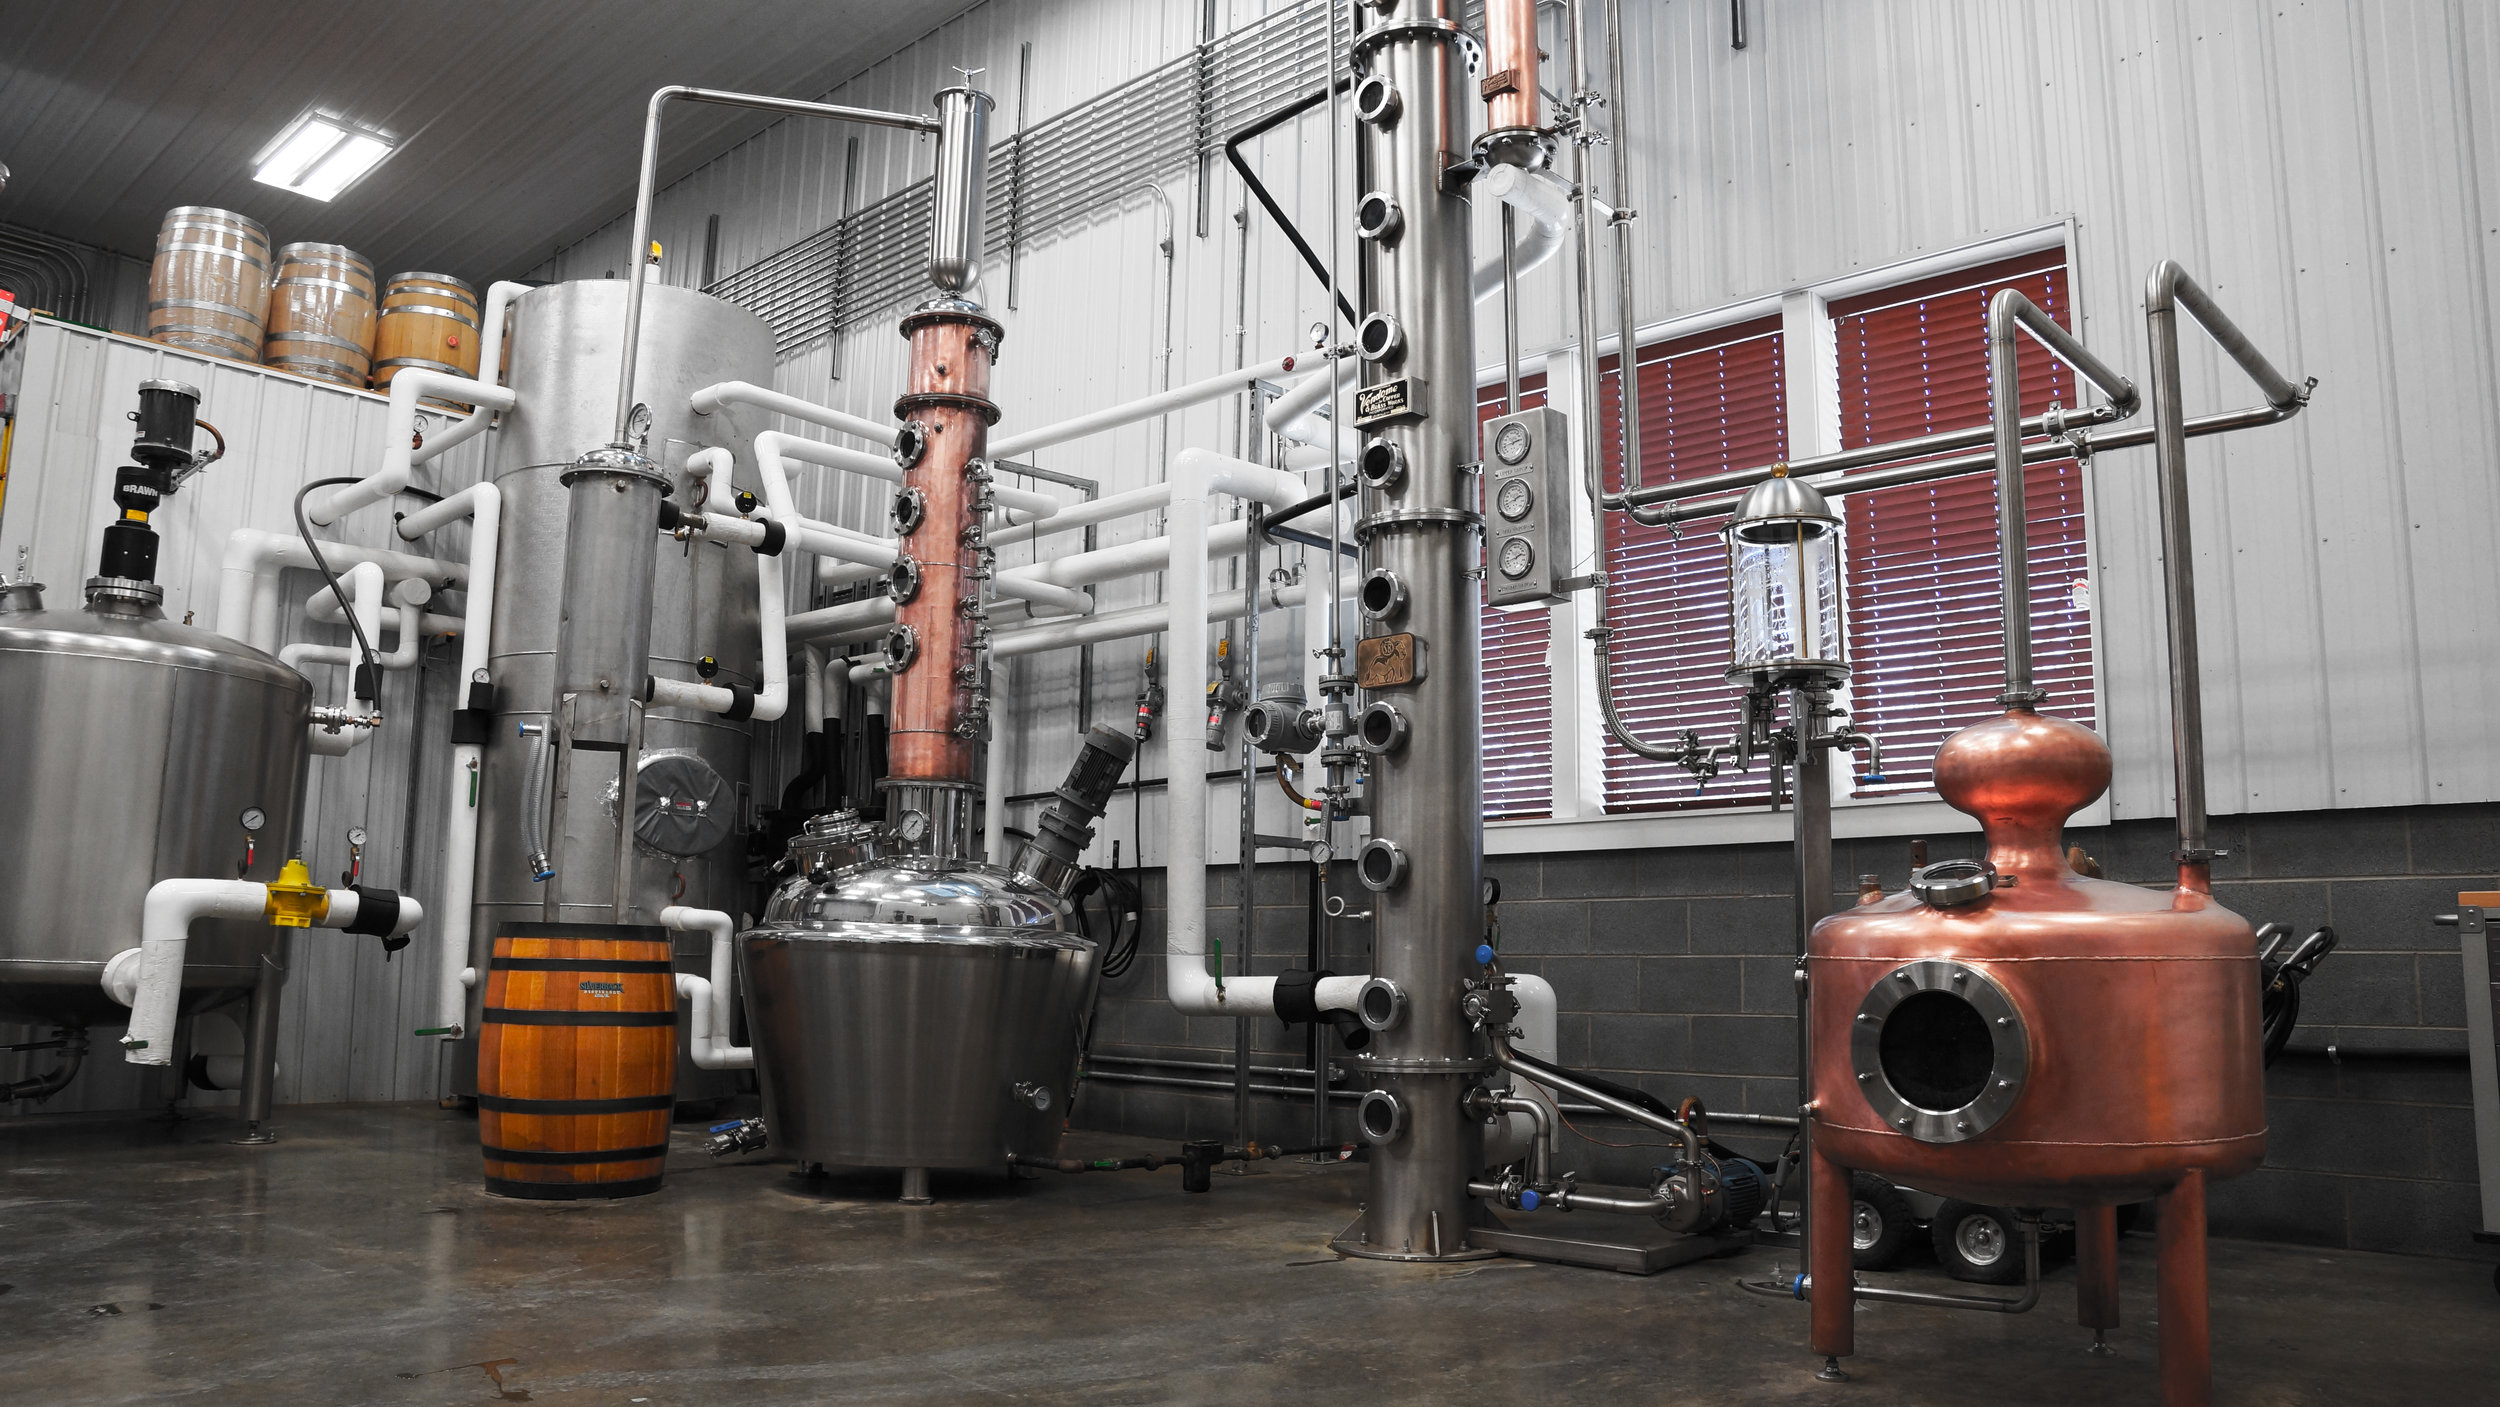 thedistillery_lowsaturation, high contrast.jpg